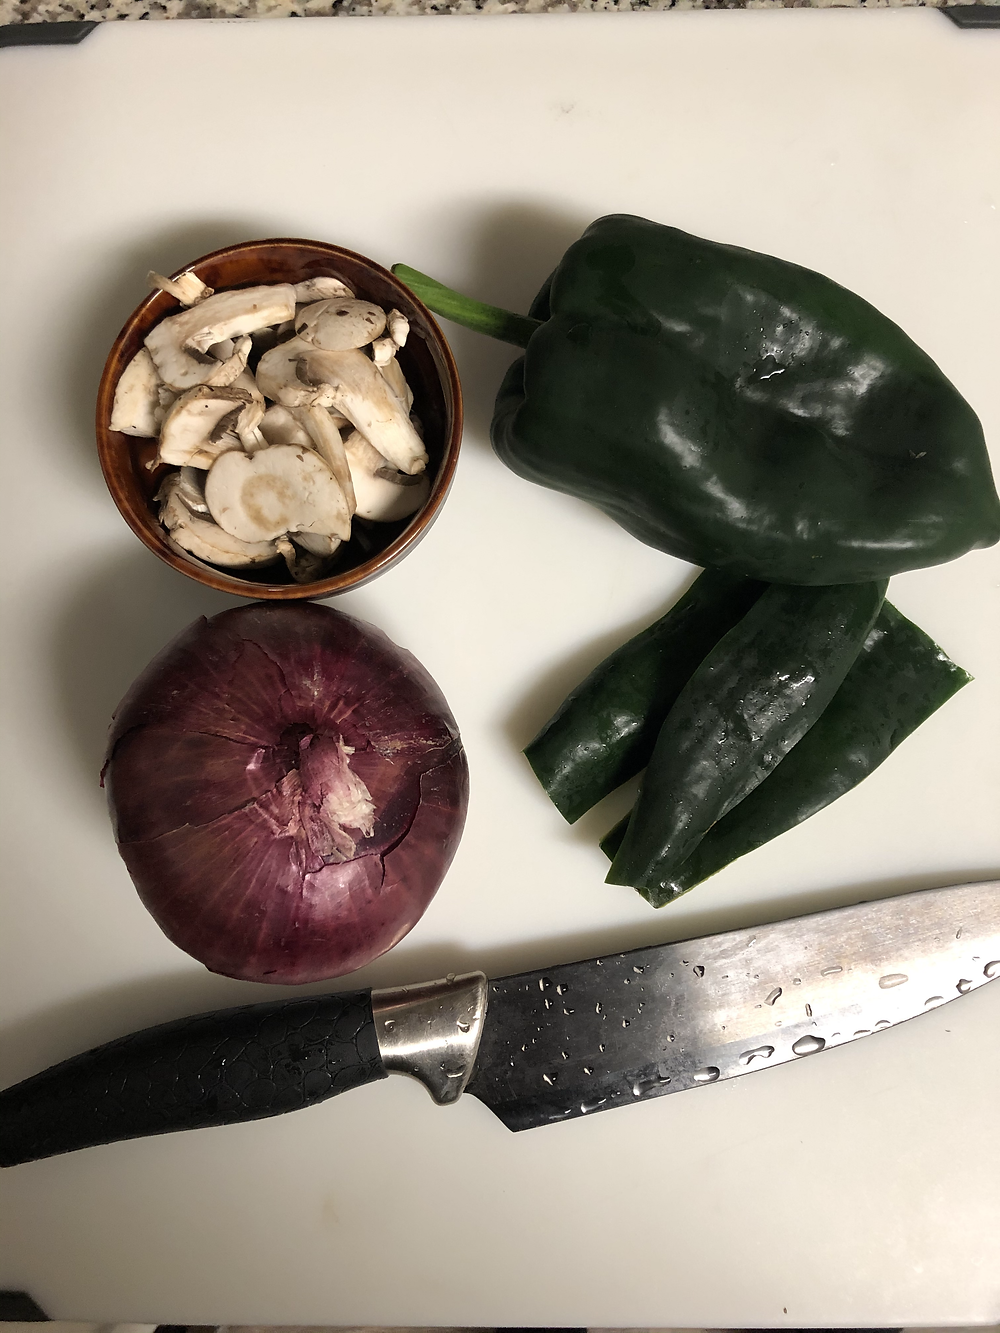 meal prepping and simple meal preparation ensures positive adaptation